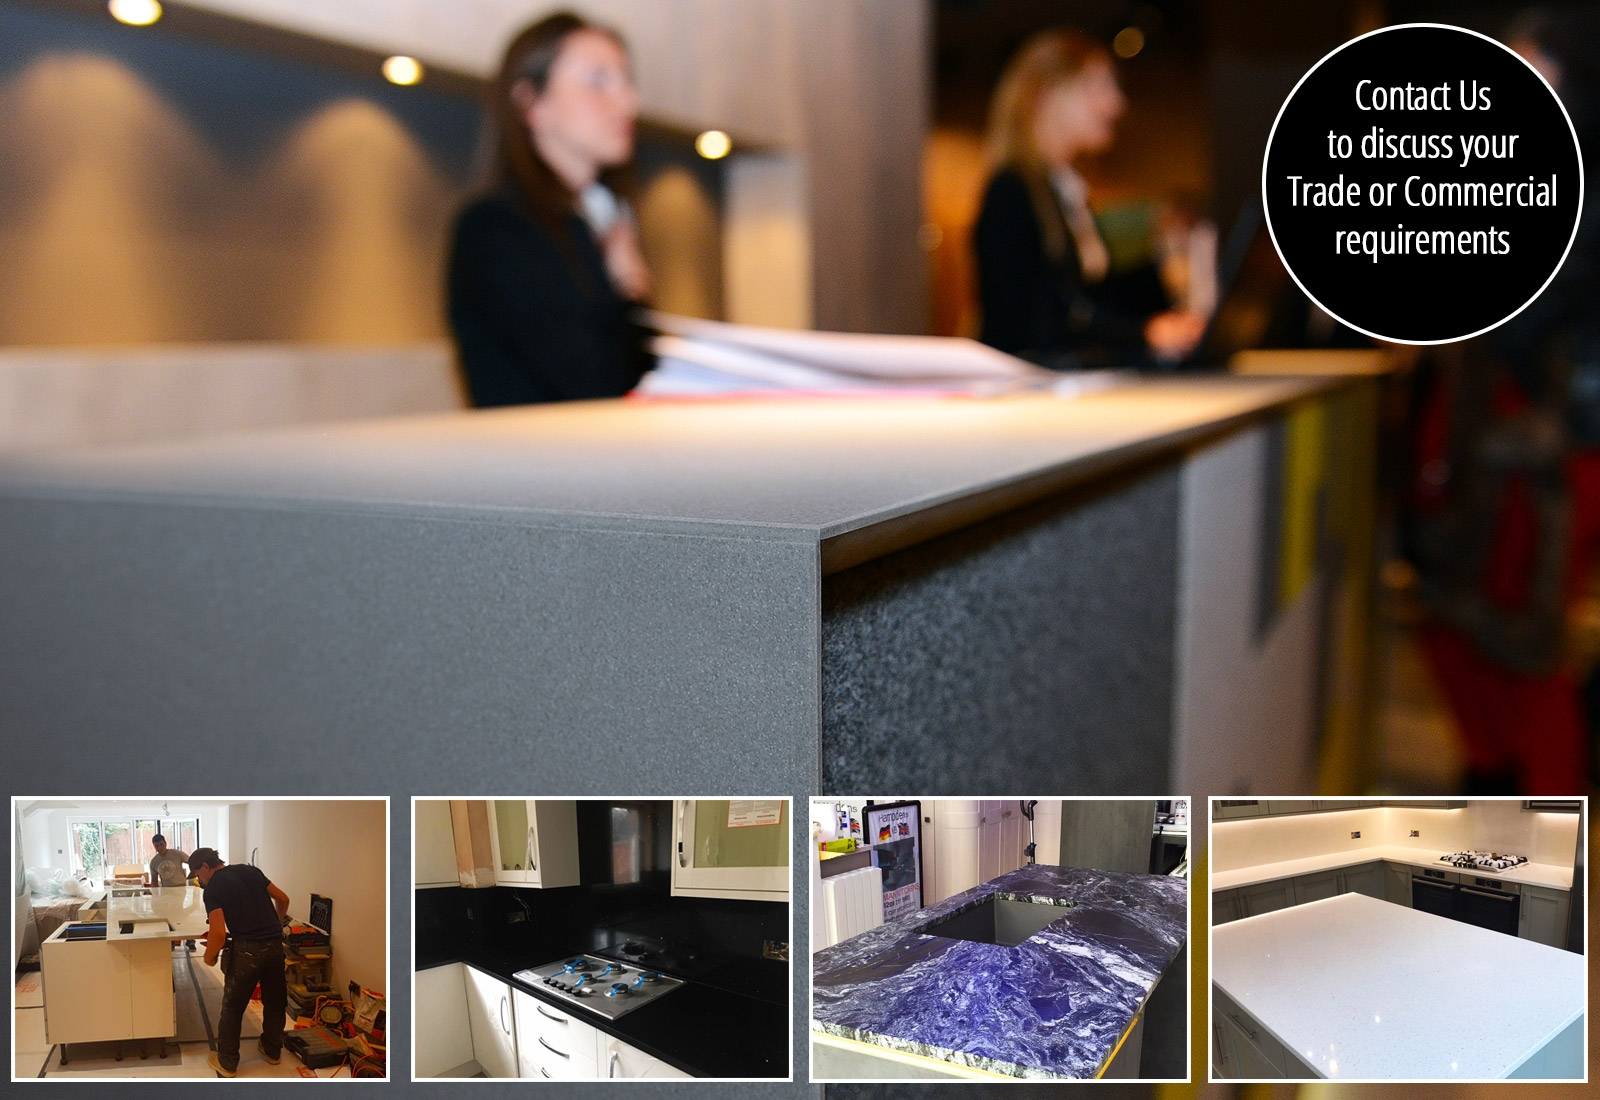 Commercial and Trade Kitchen Worktops